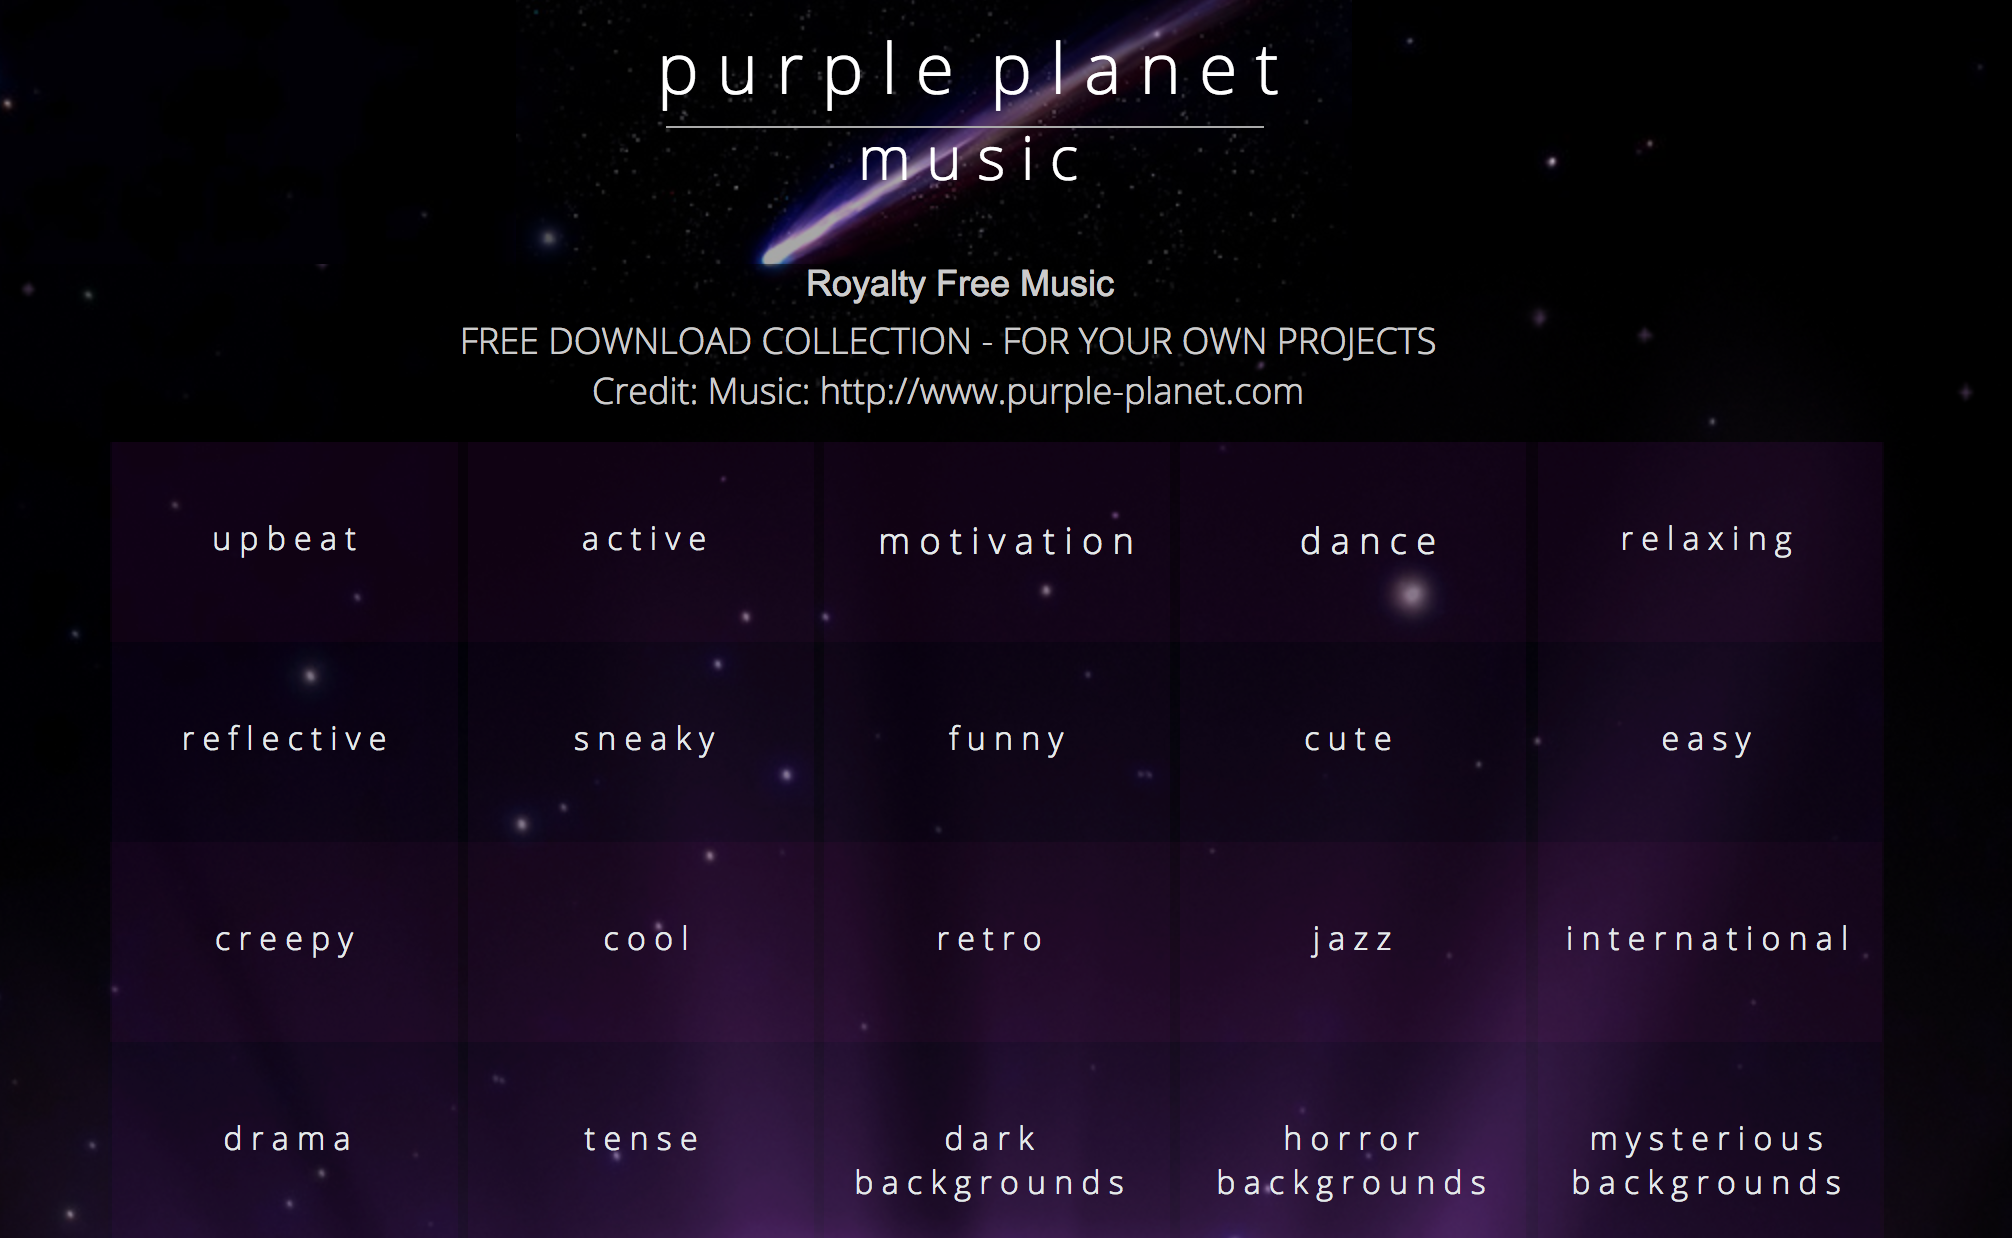 purple-planet-non-copyrighted-music.png